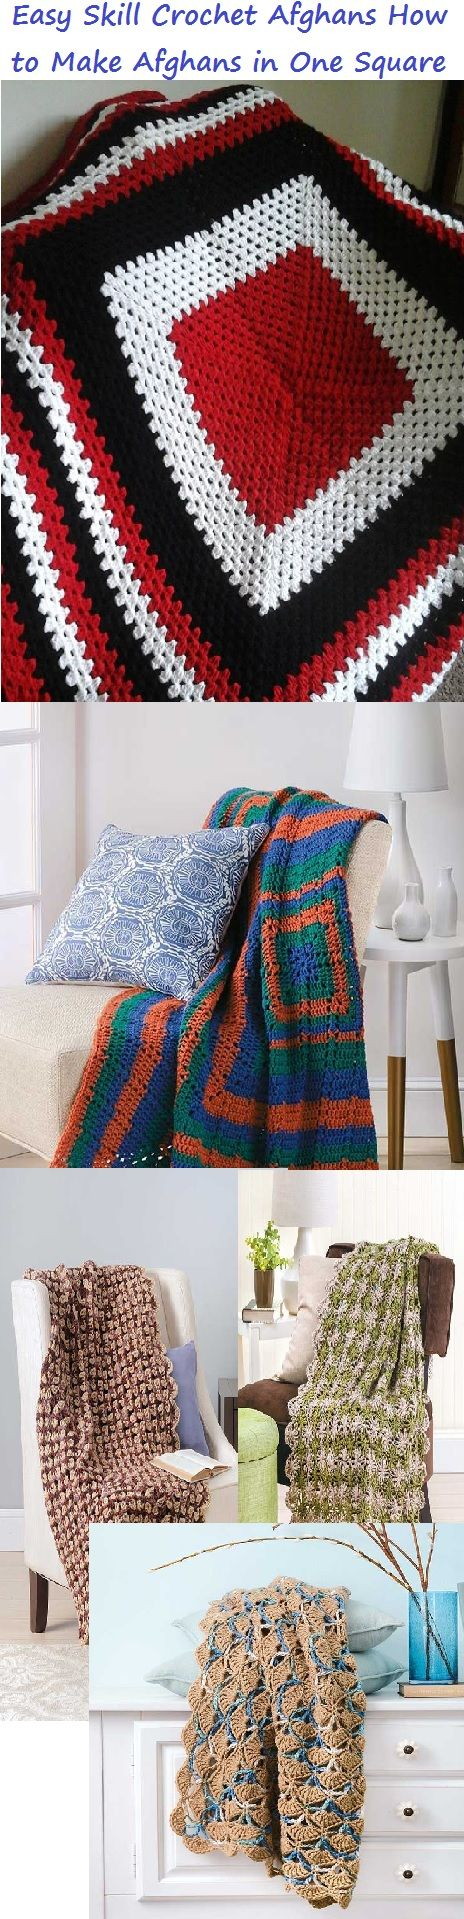 Best 25 afghan patterns ideas on pinterest free crochet blanket easy to crochet one square afghan patterns granny squares bankloansurffo Images